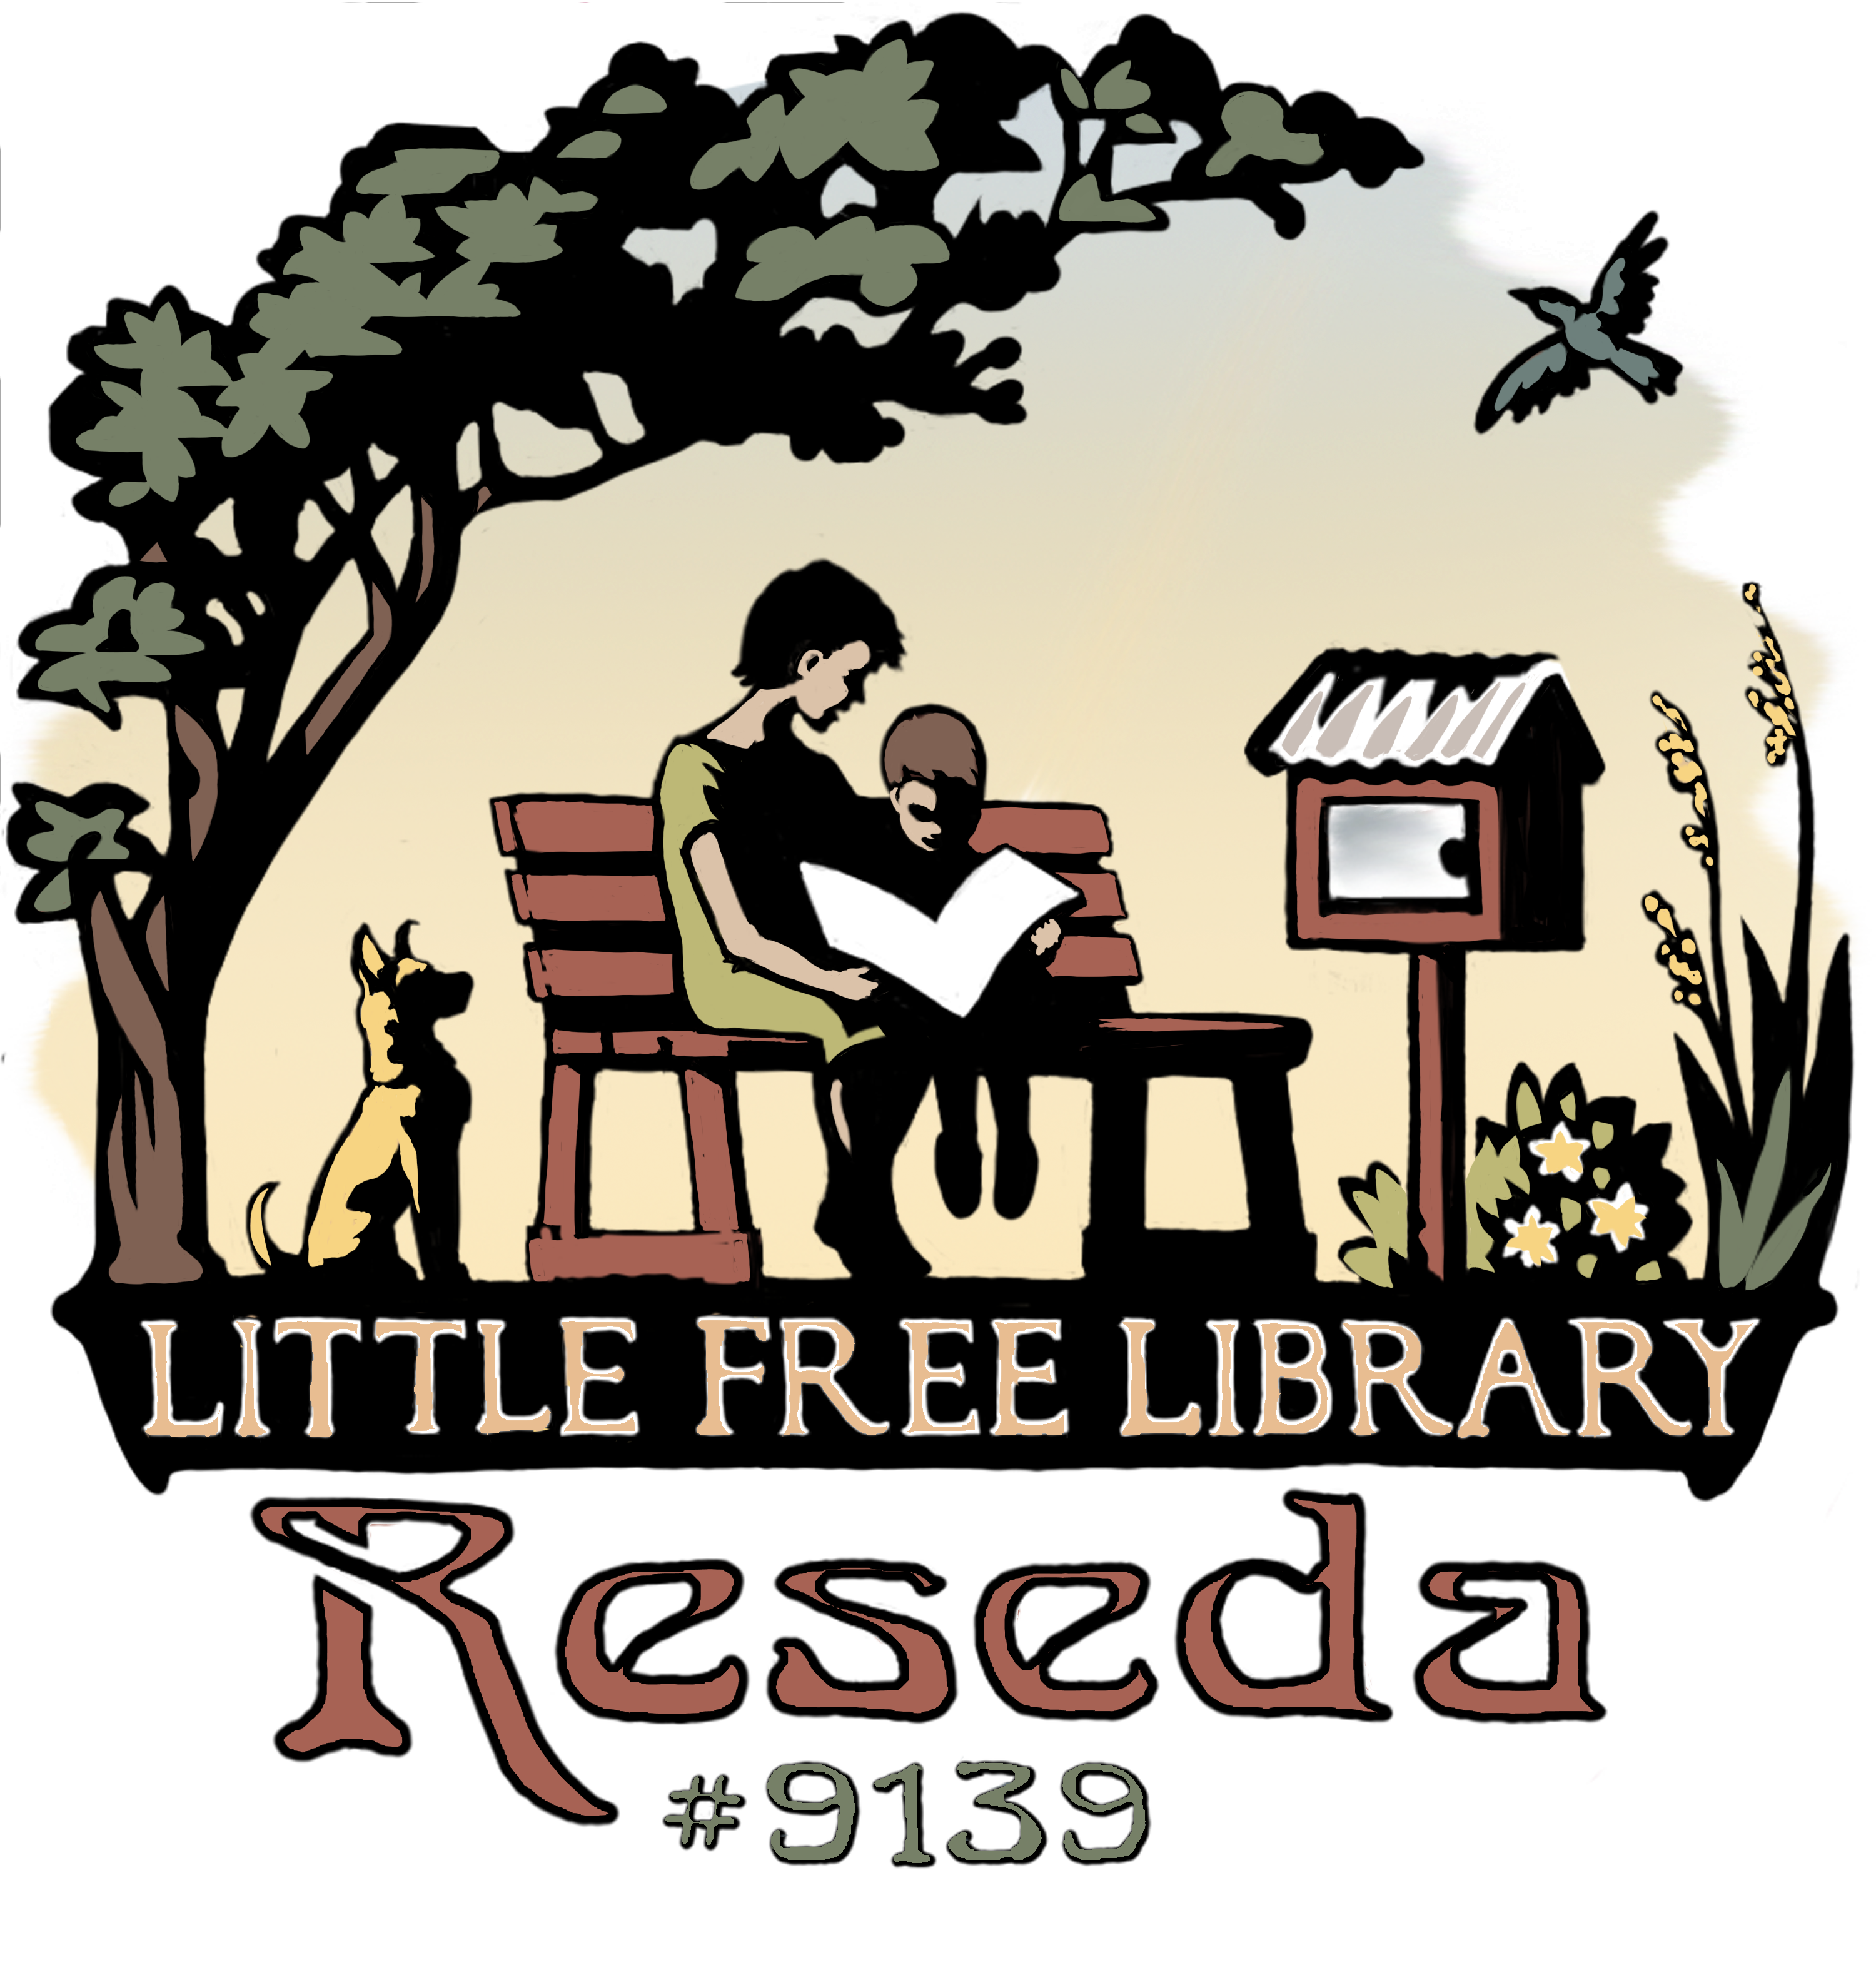 Library book return clipart graphic royalty free library Little Free Library Reseda Promo Materials   Tire Swing Ideas ... graphic royalty free library